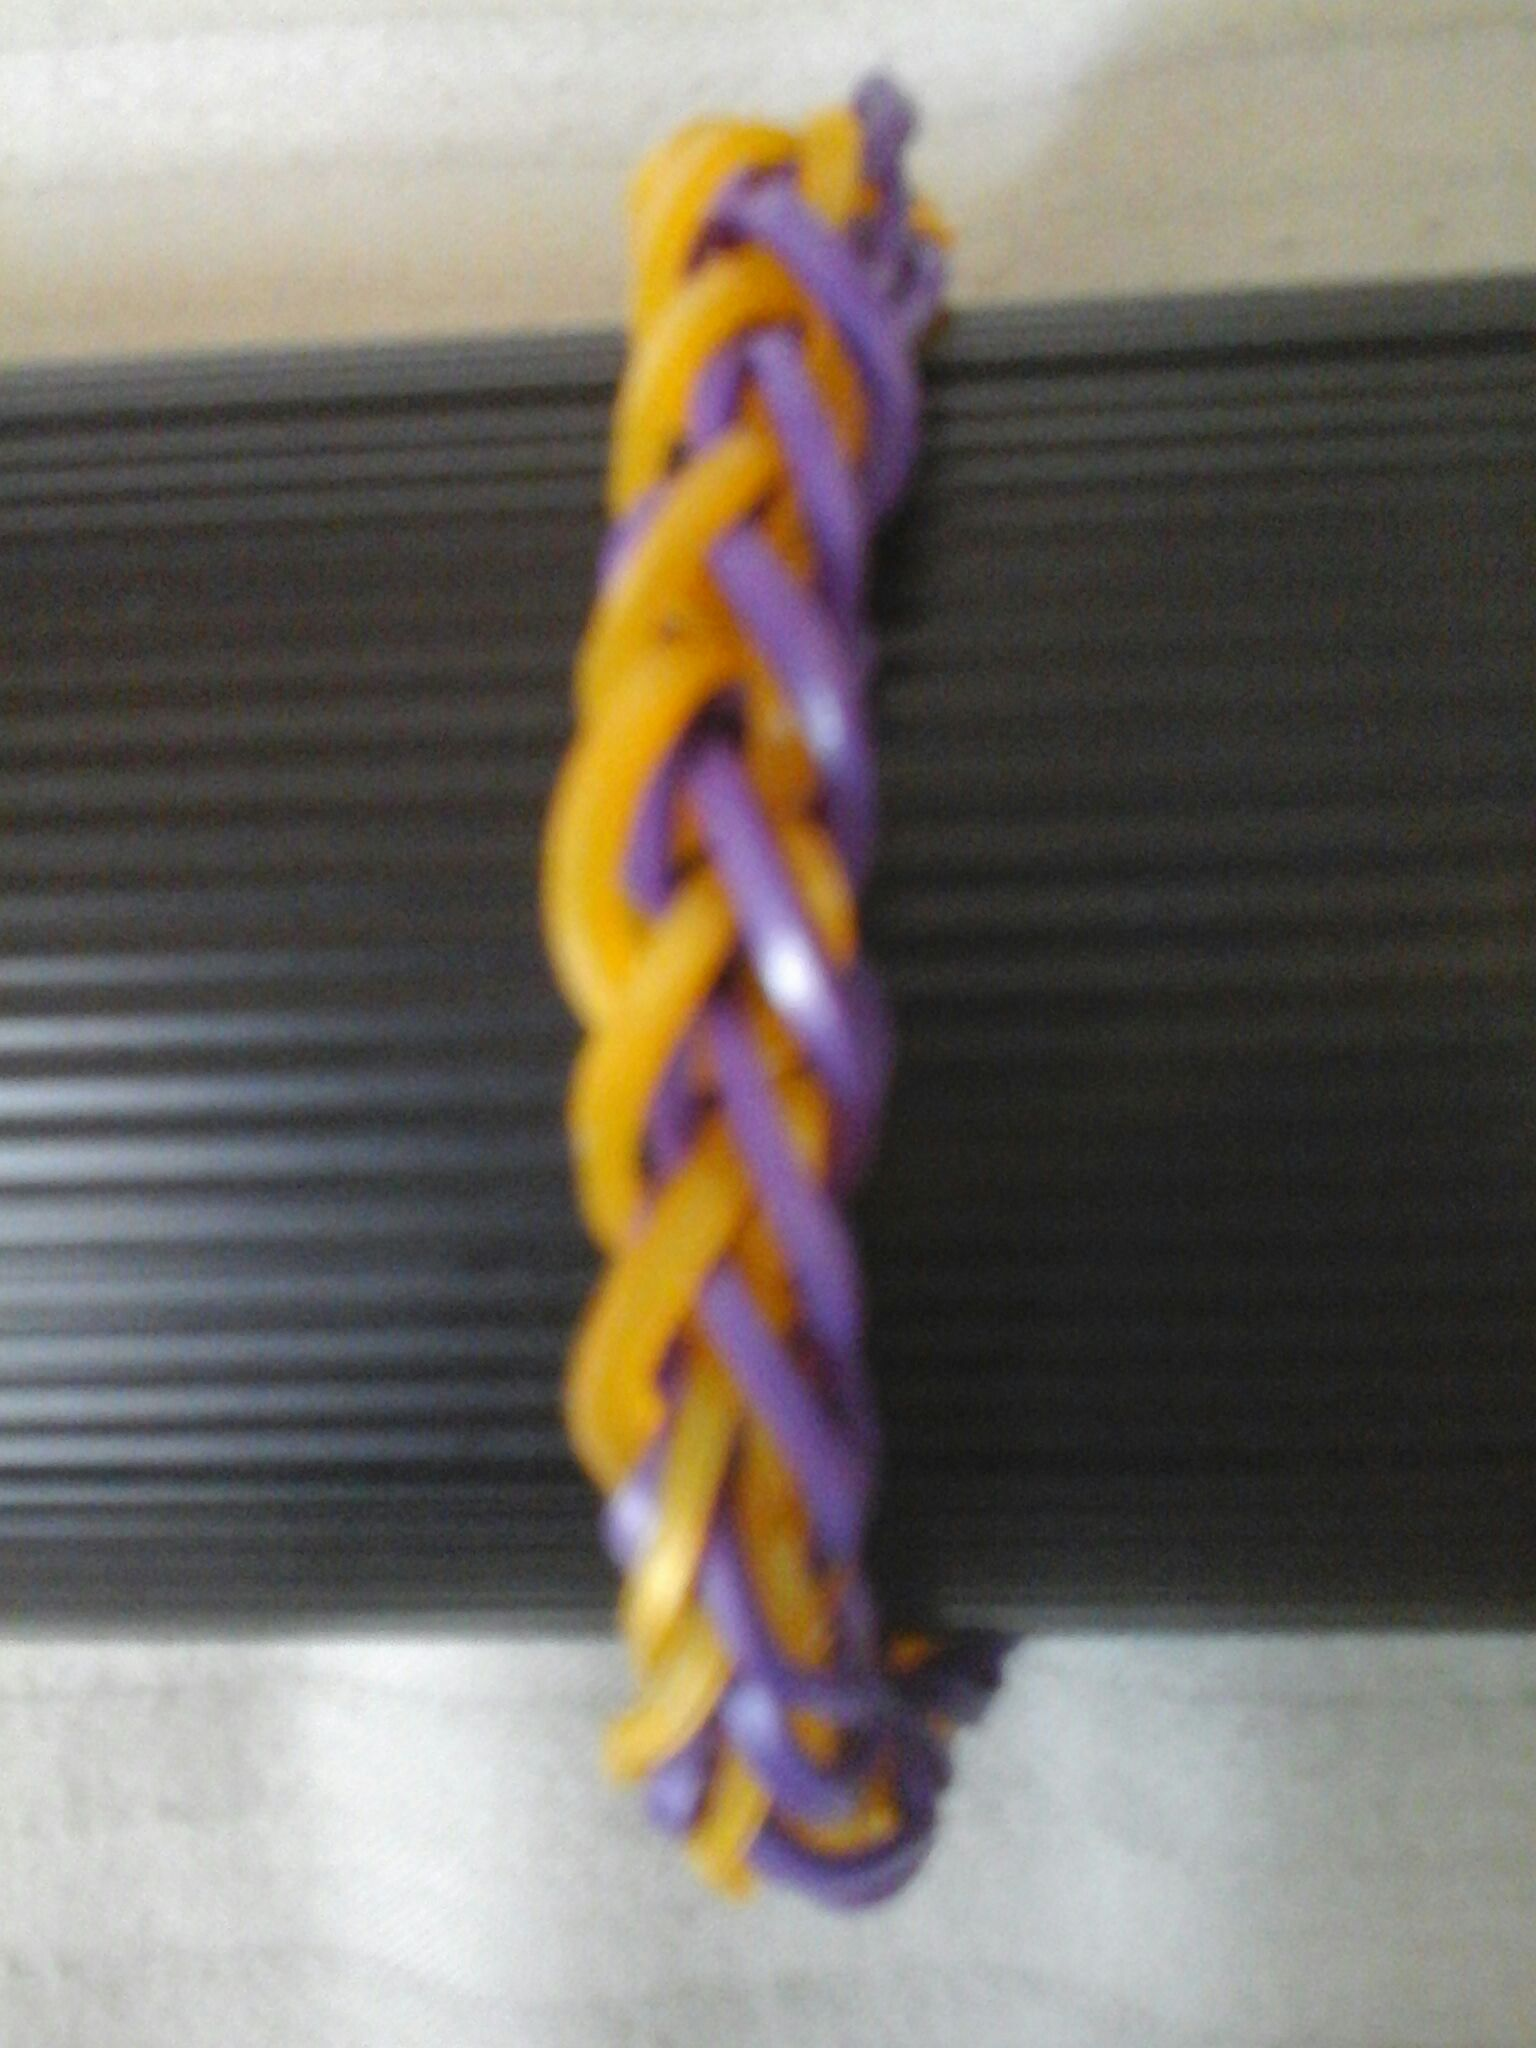 How to make a french braid bracelet (The loom is optional)